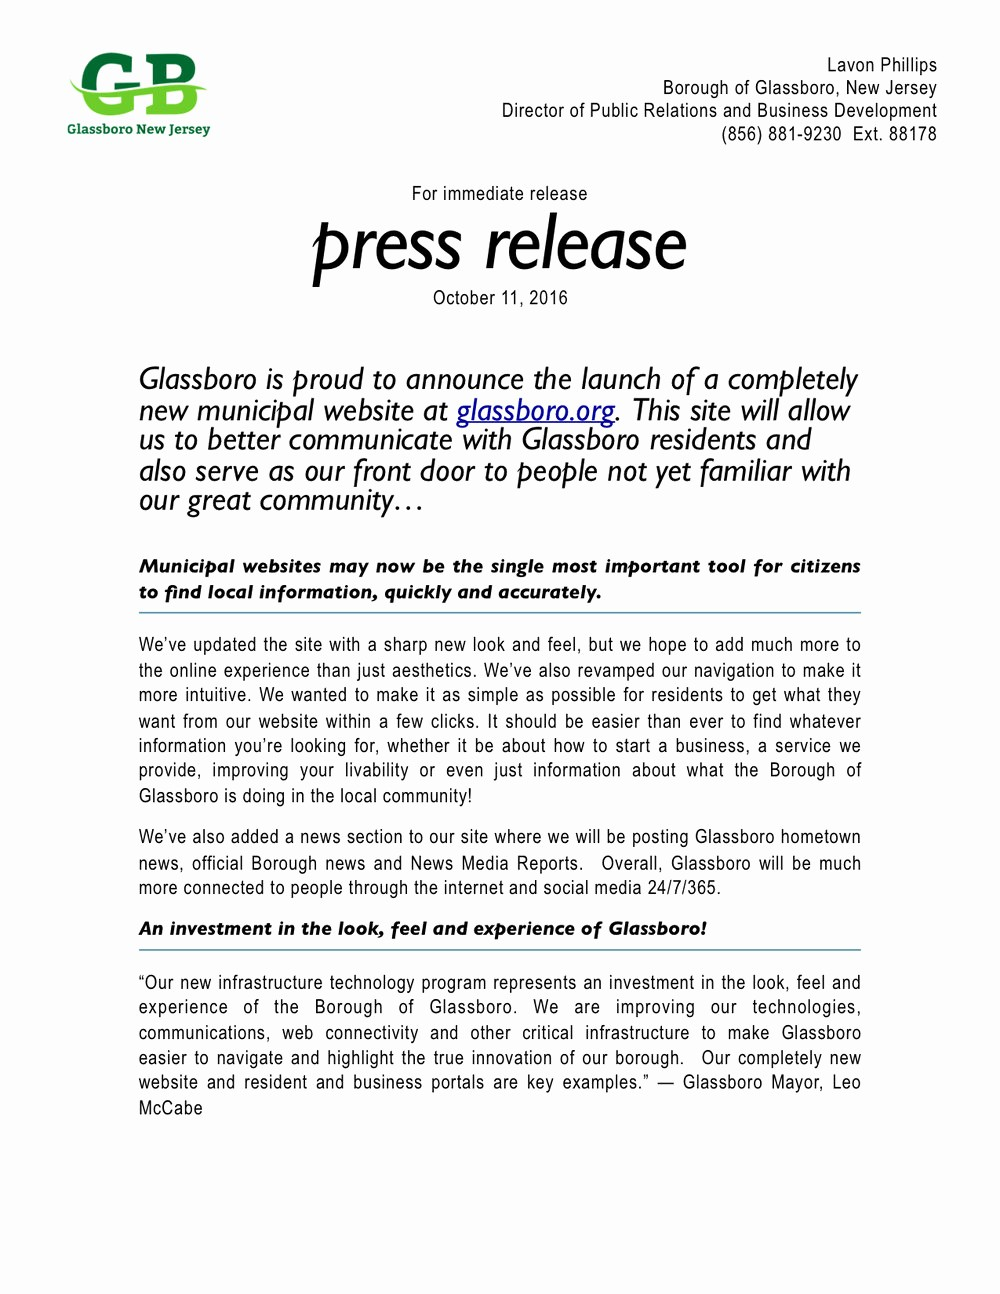 New Product Press Release Sample Best Of Glassboro is Proud to Announce the Launch Of A Pletely